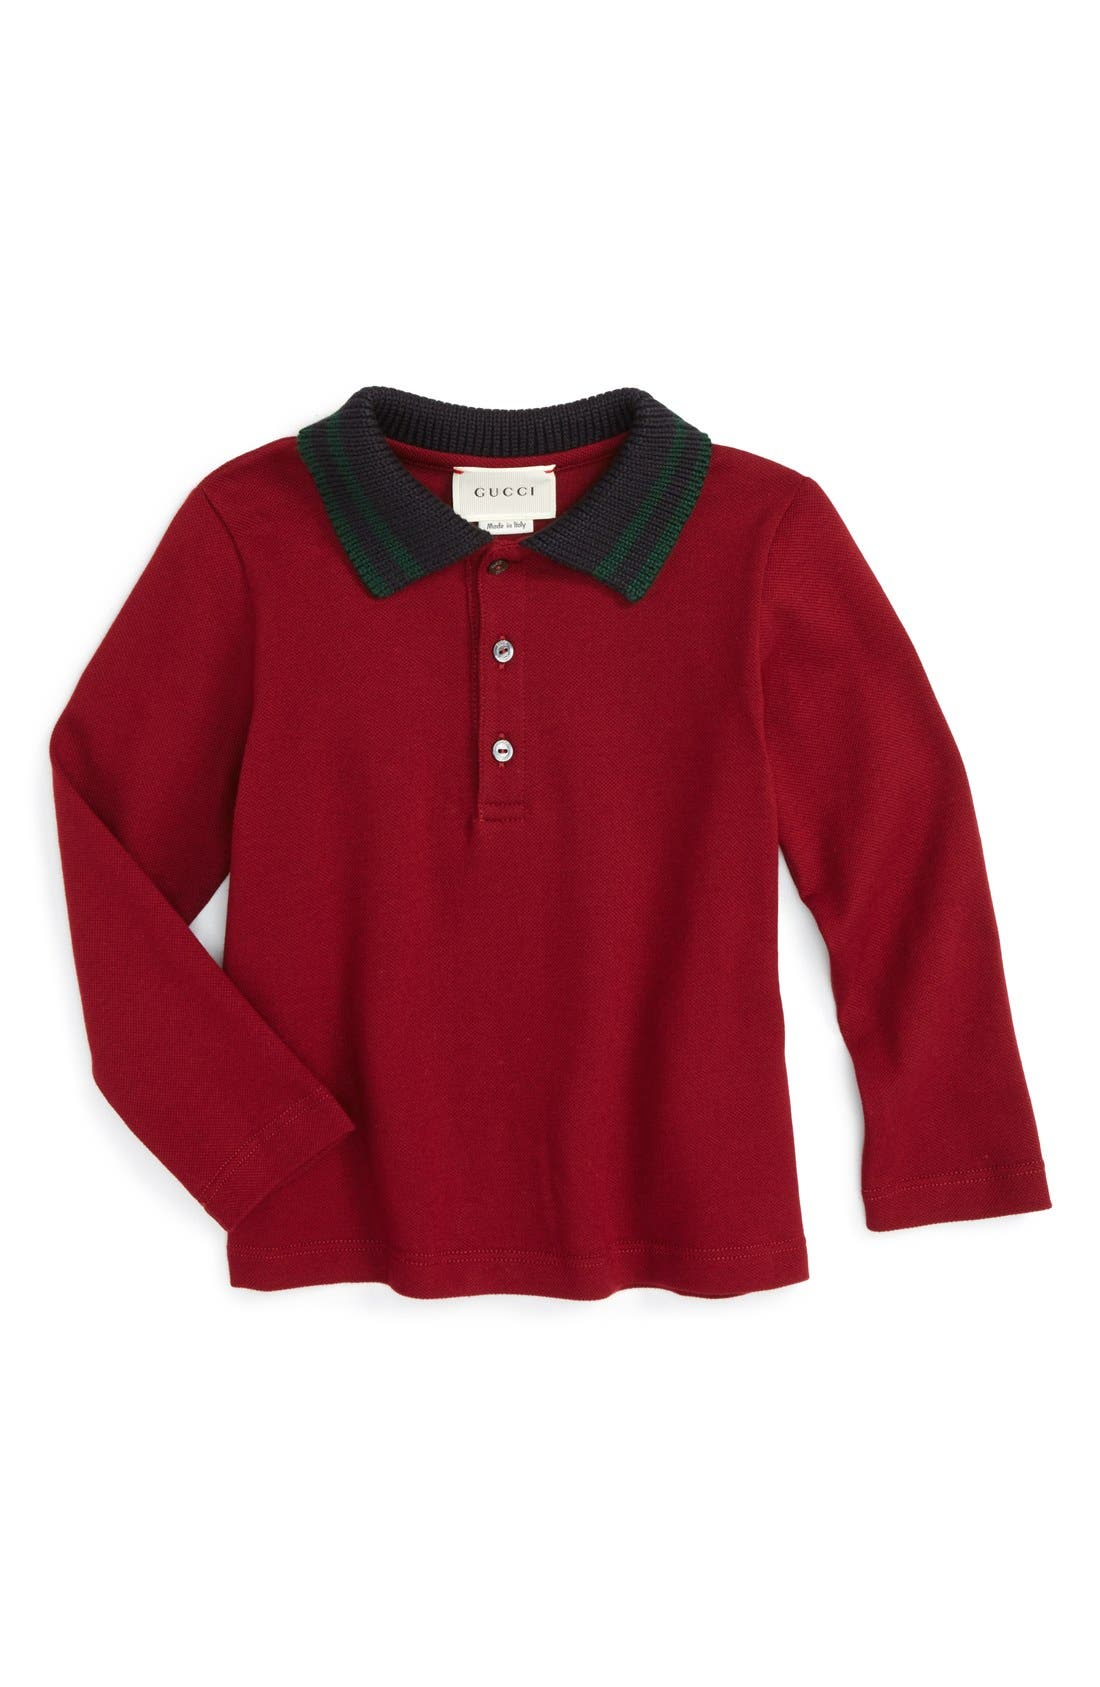 Gucci Stripe Collar Long Sleeve Polo (Baby Boys & Toddler Boys)